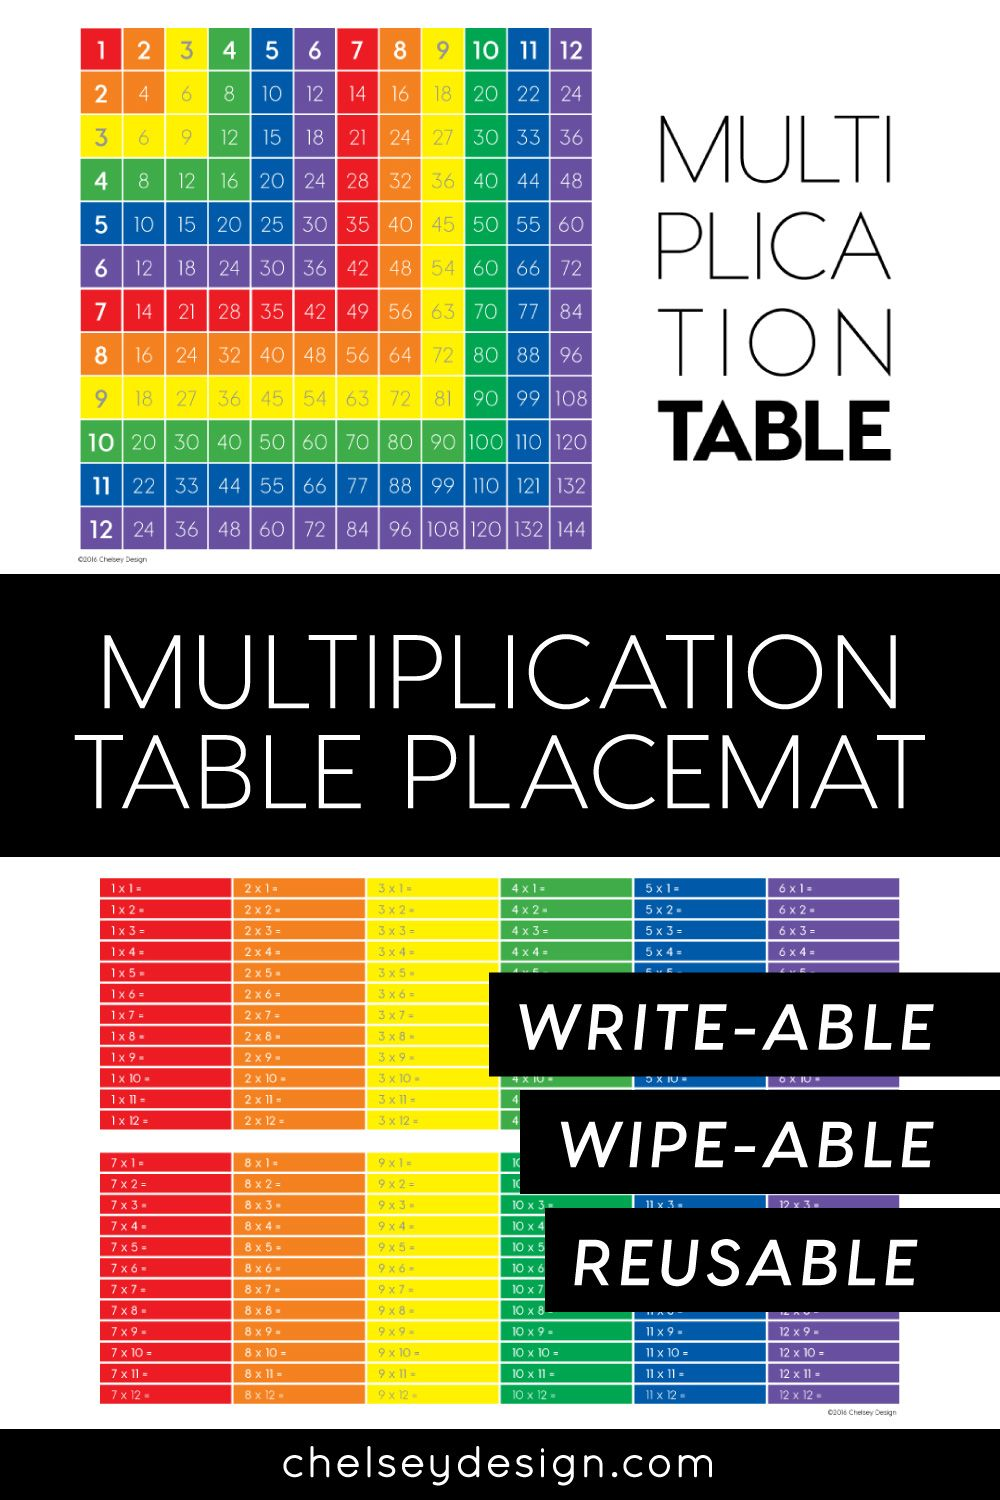 Multiplication Table Placemat In 2020 Math Charts Multiplication Table Multiplication Fun